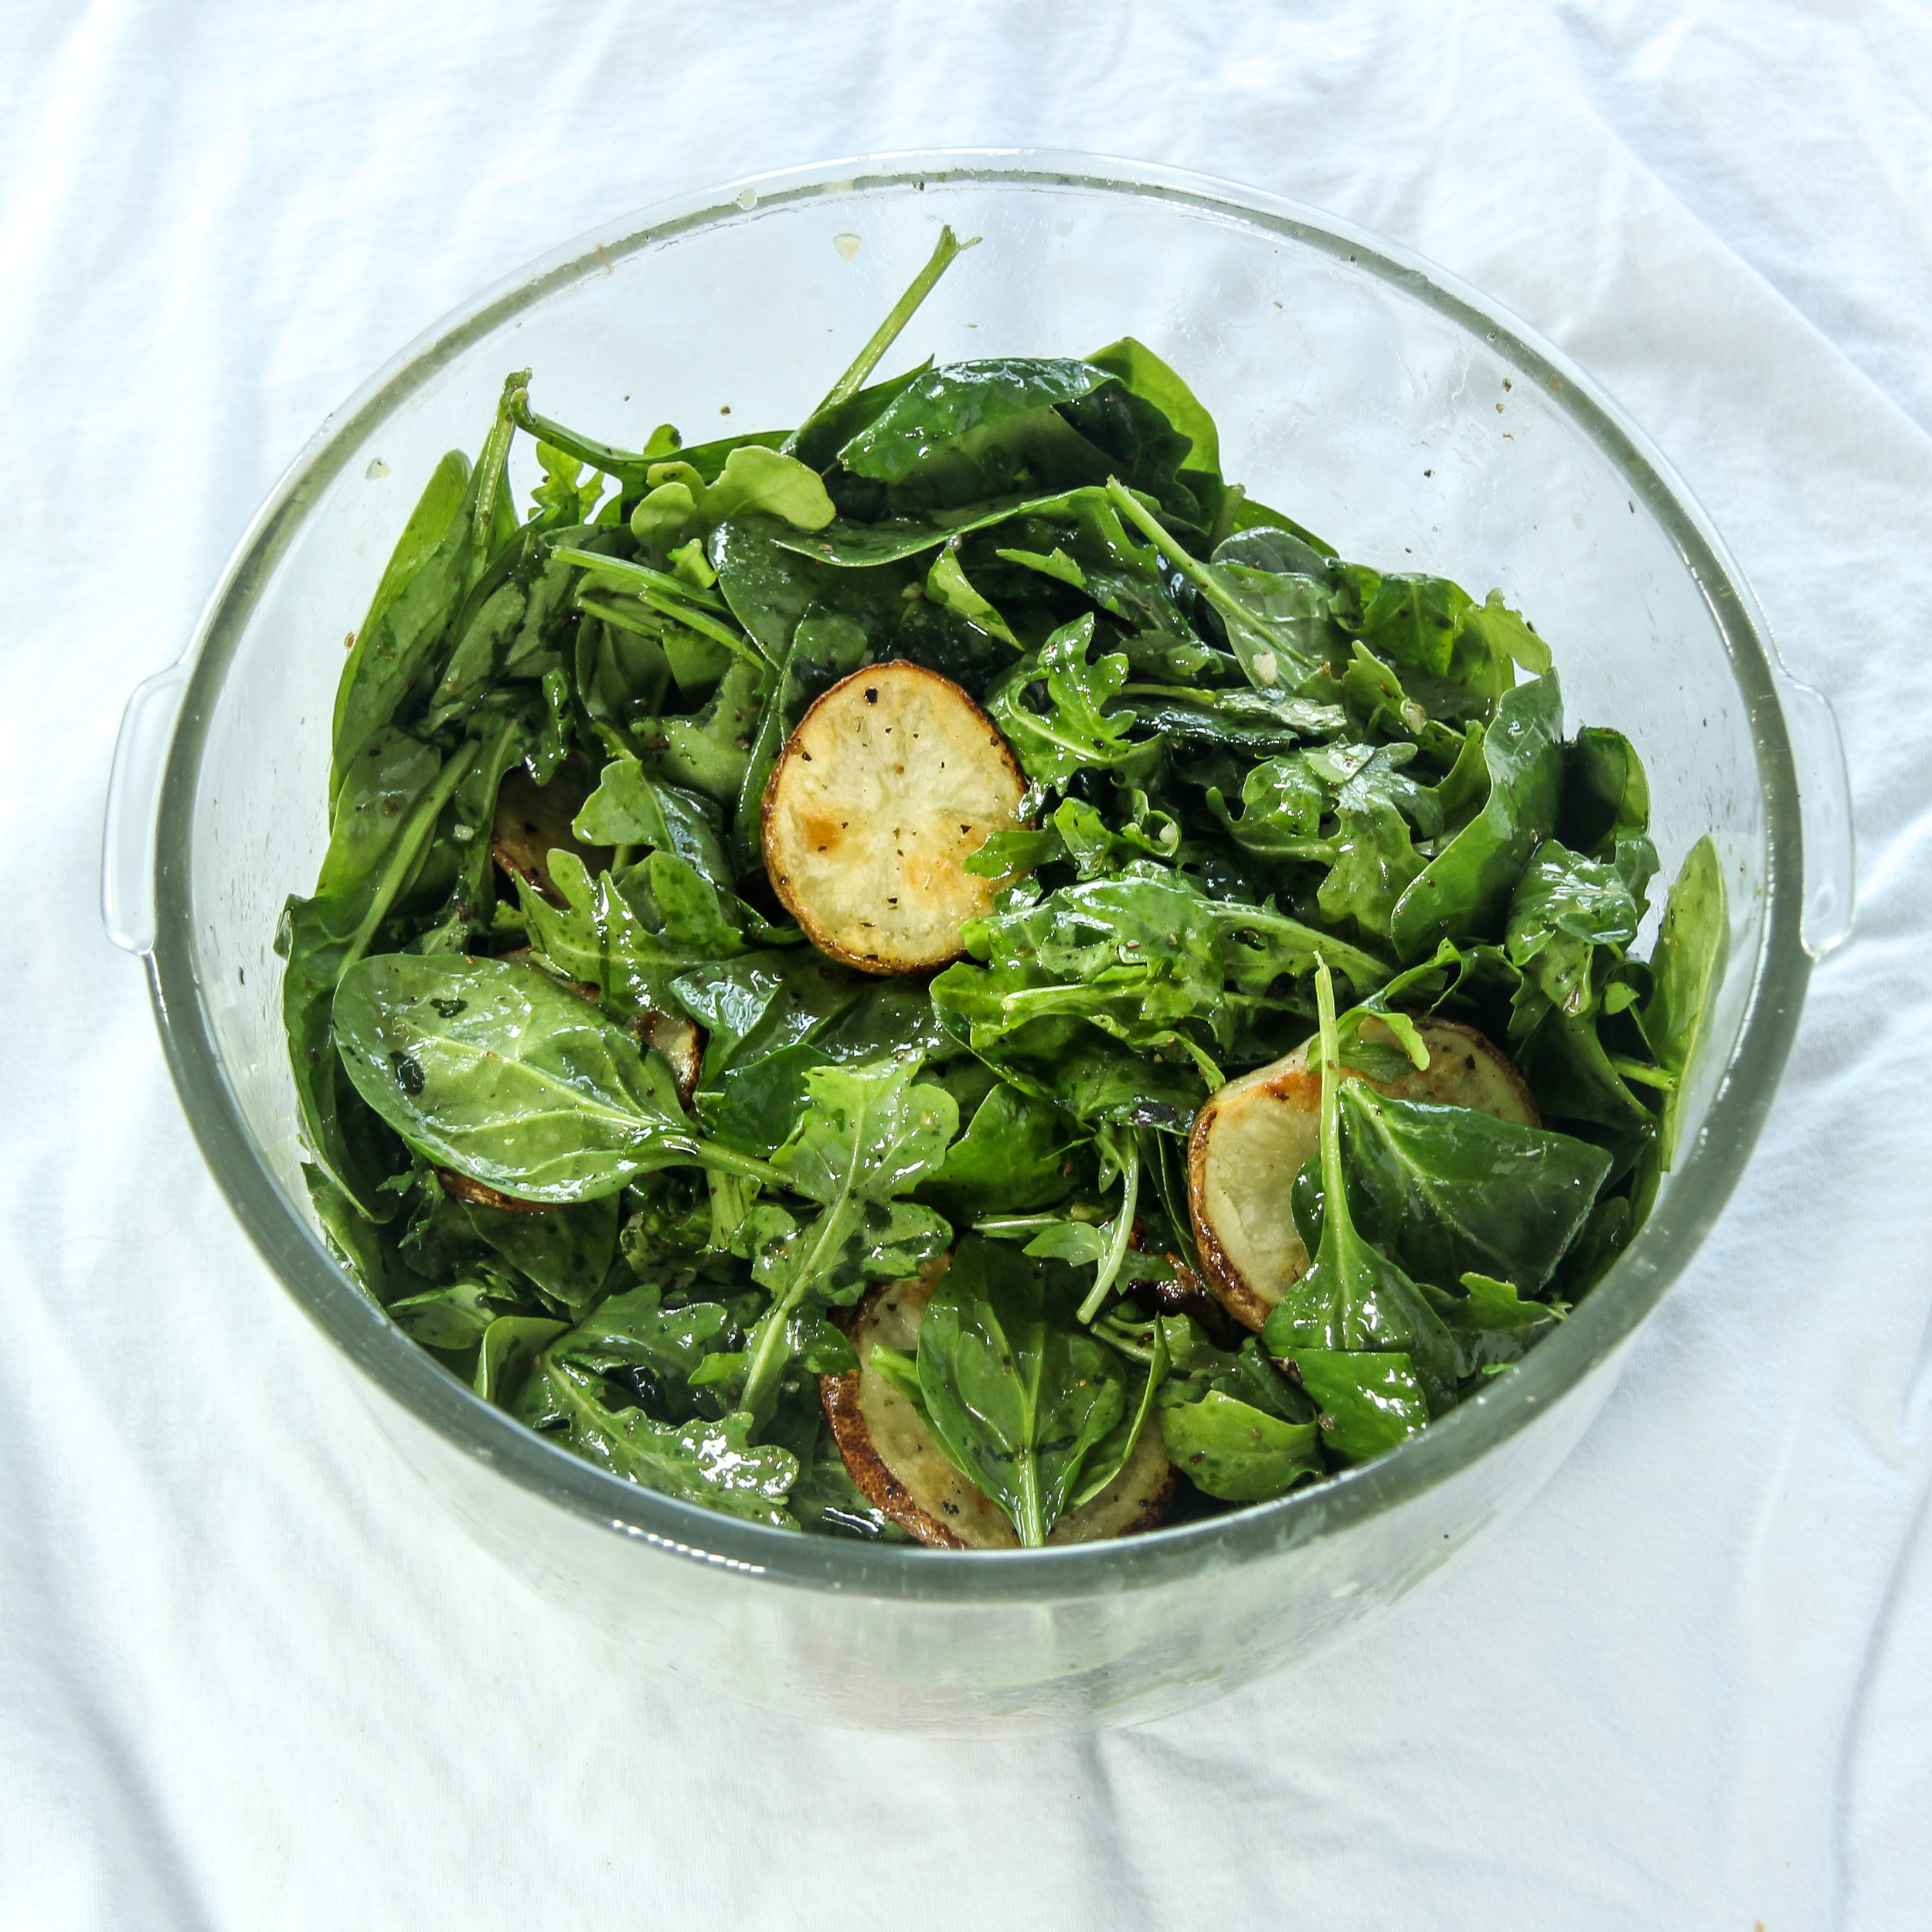 Spring Salad with Garlic Herb Potatoes-process picture, step by step.jpg